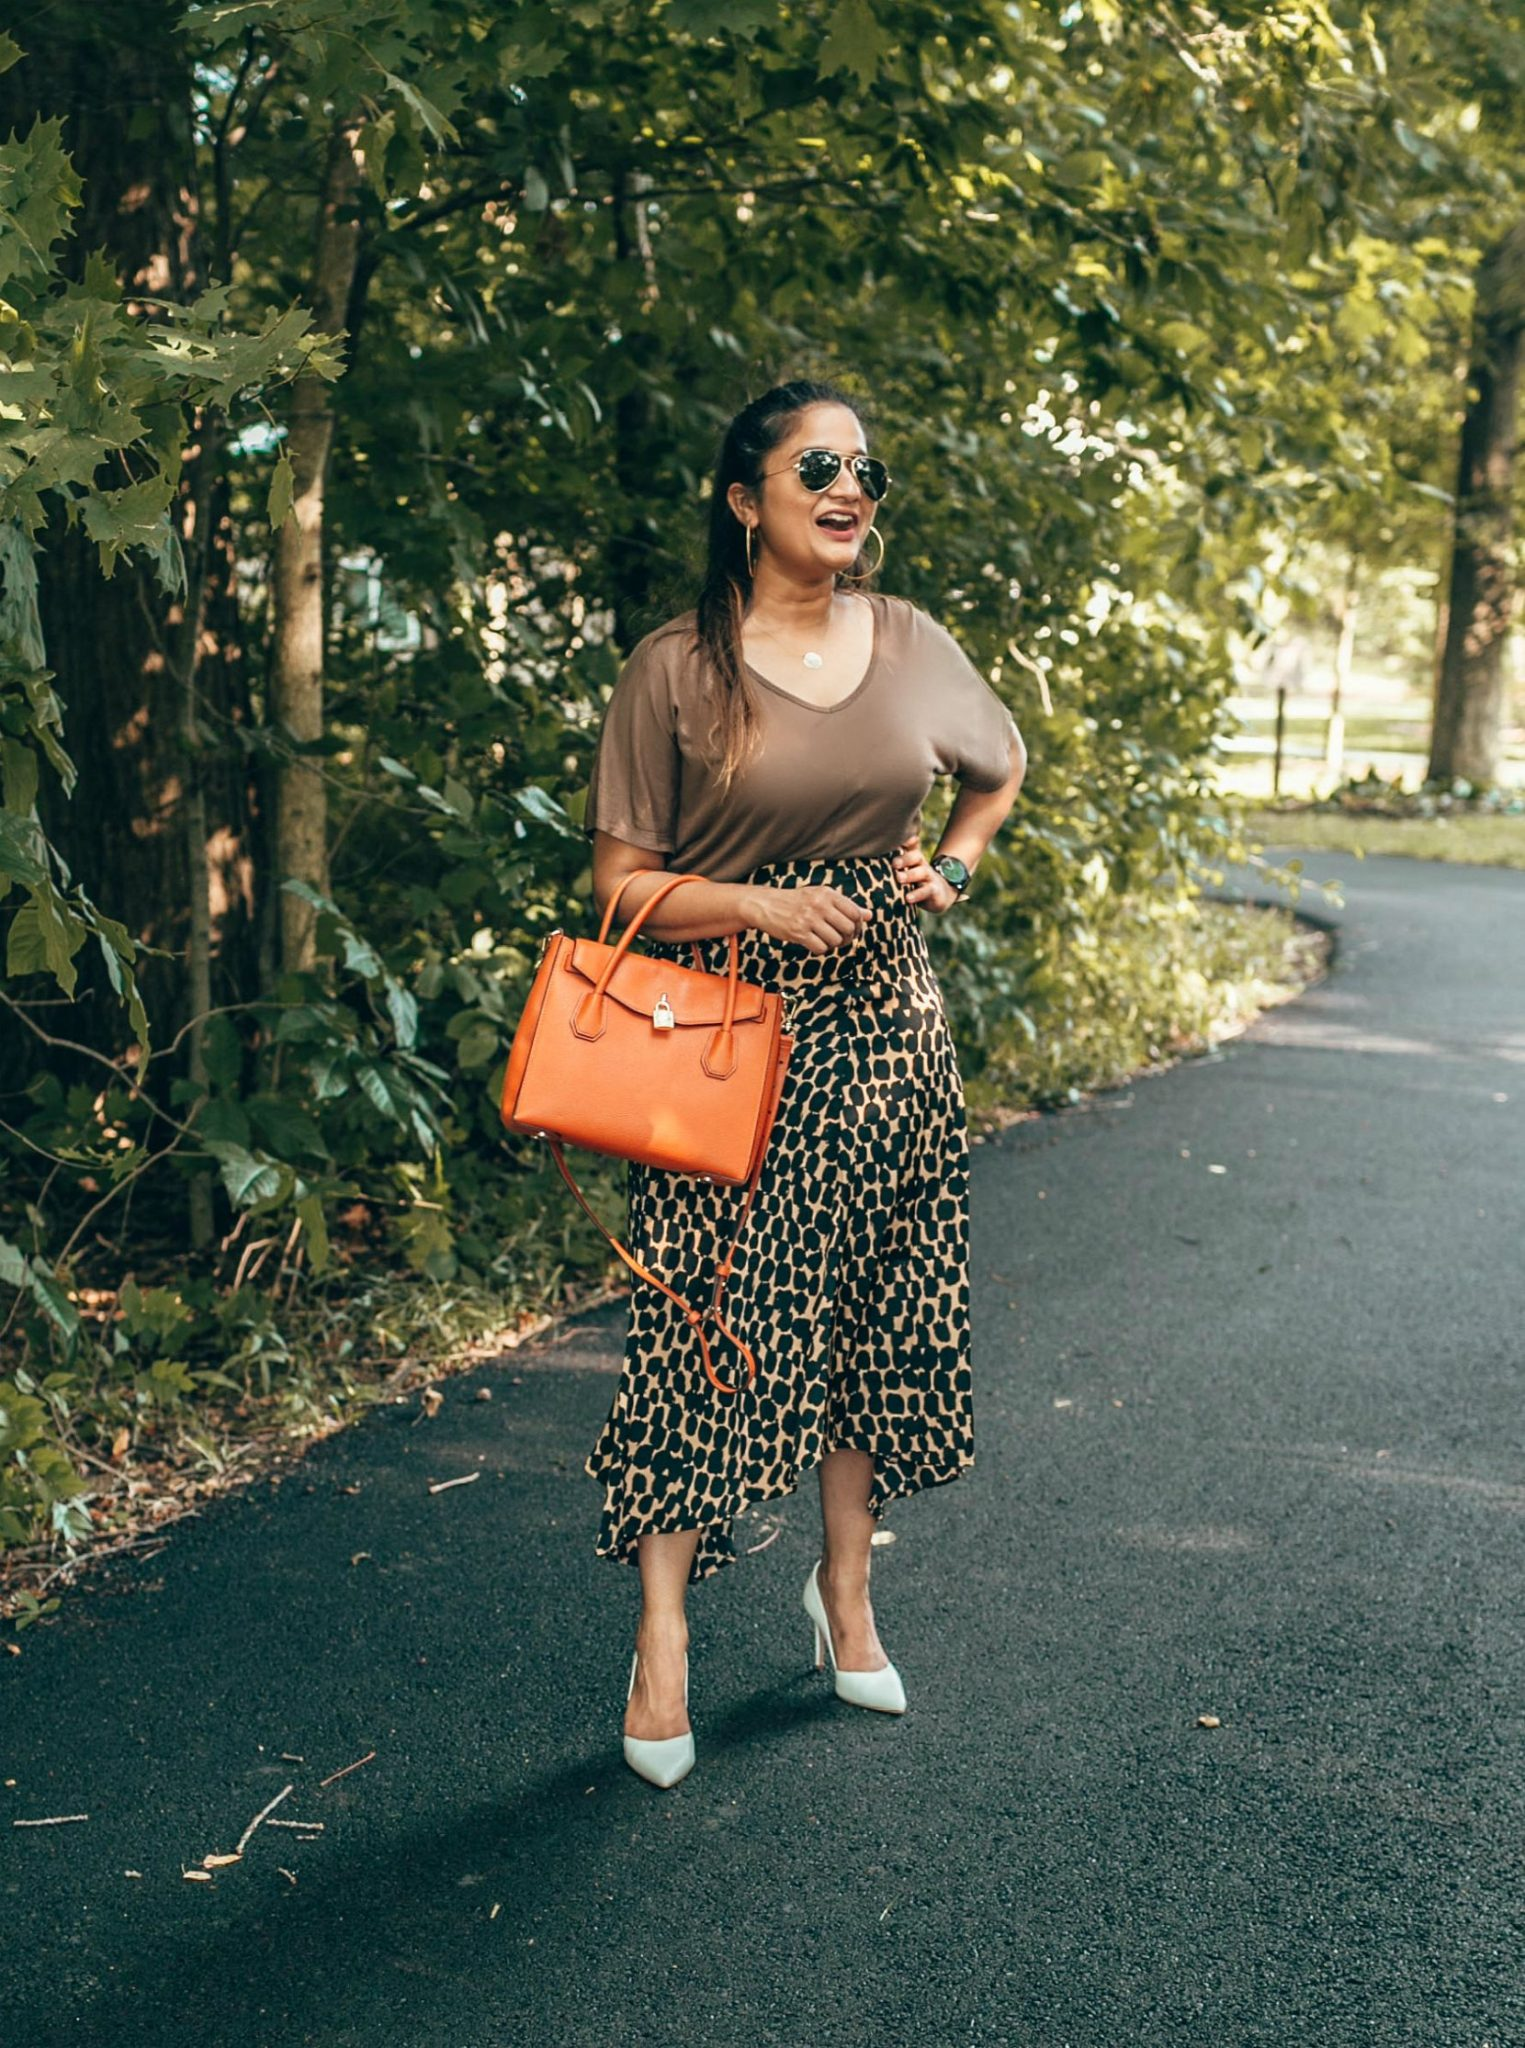 wearing VINCE CAMUTO AIRMOSAH PUMP in white | The Leopard Print Trend featured by popular Ohio modest fashion blogger, Dreaming Loud